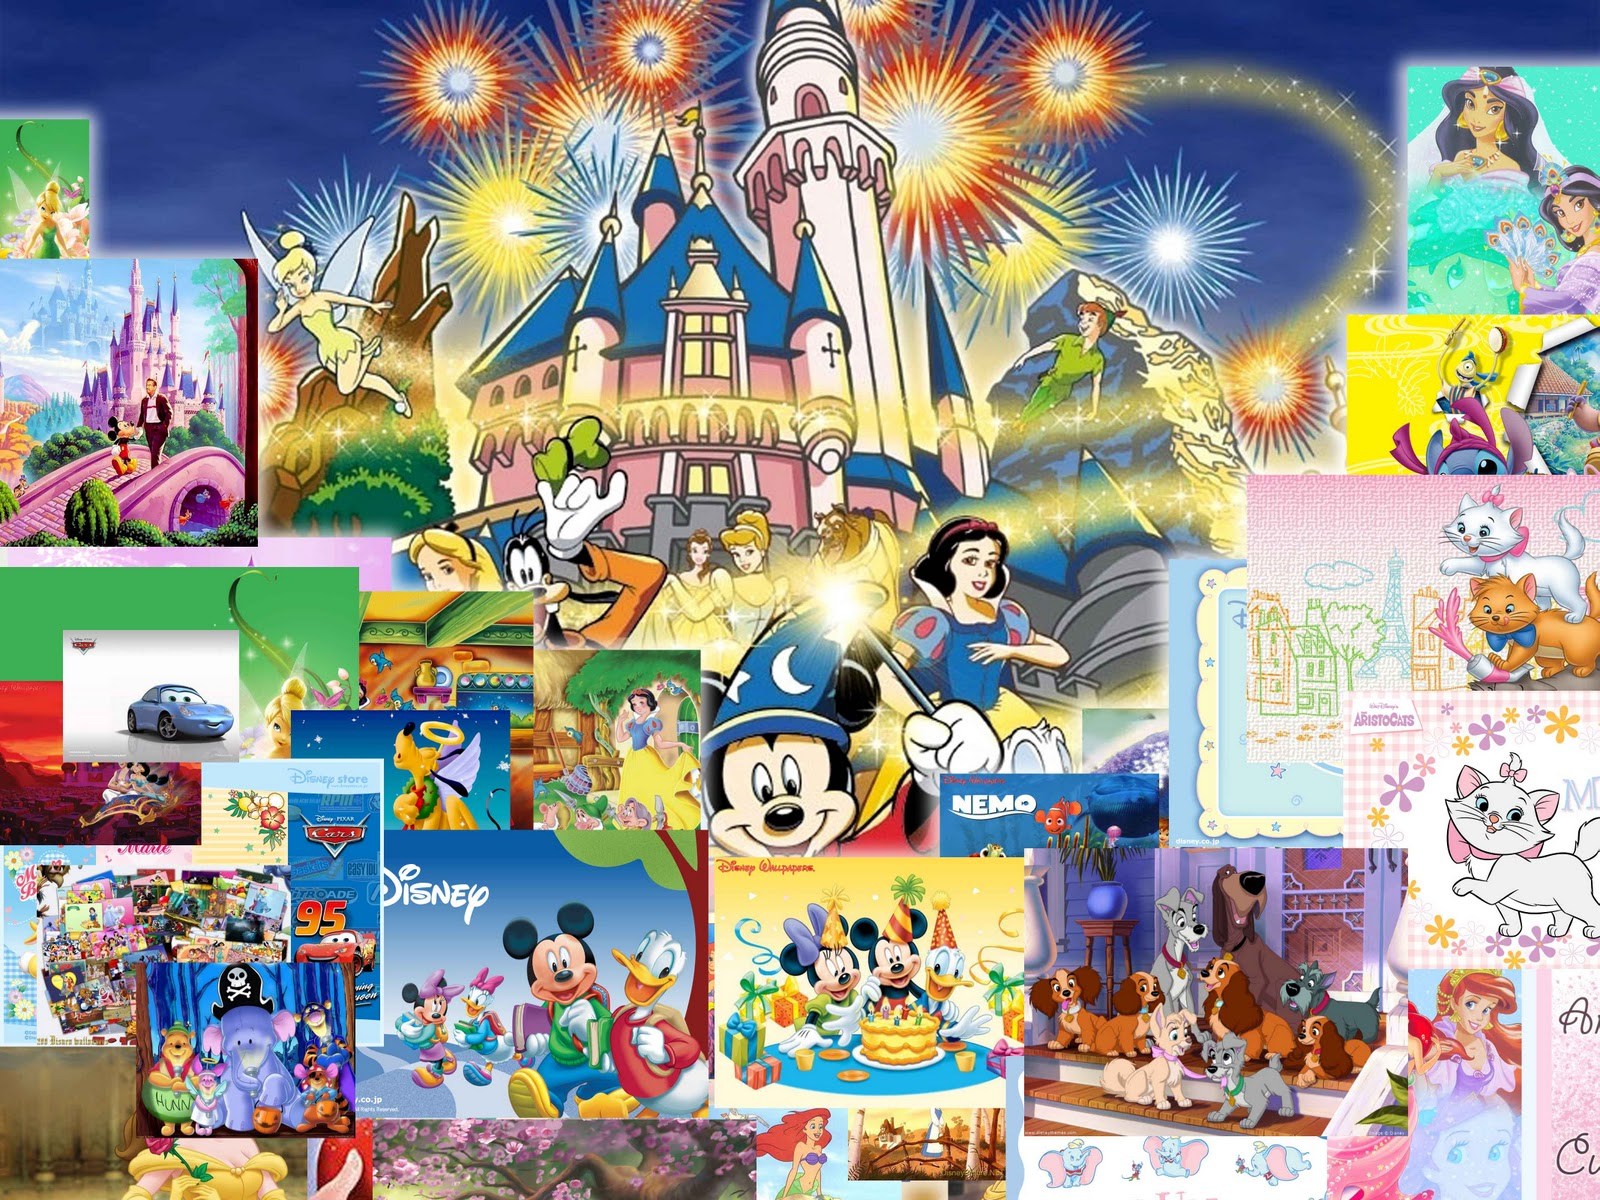 Download wallpapers gratis 50 disney wallpaper 1600x1200